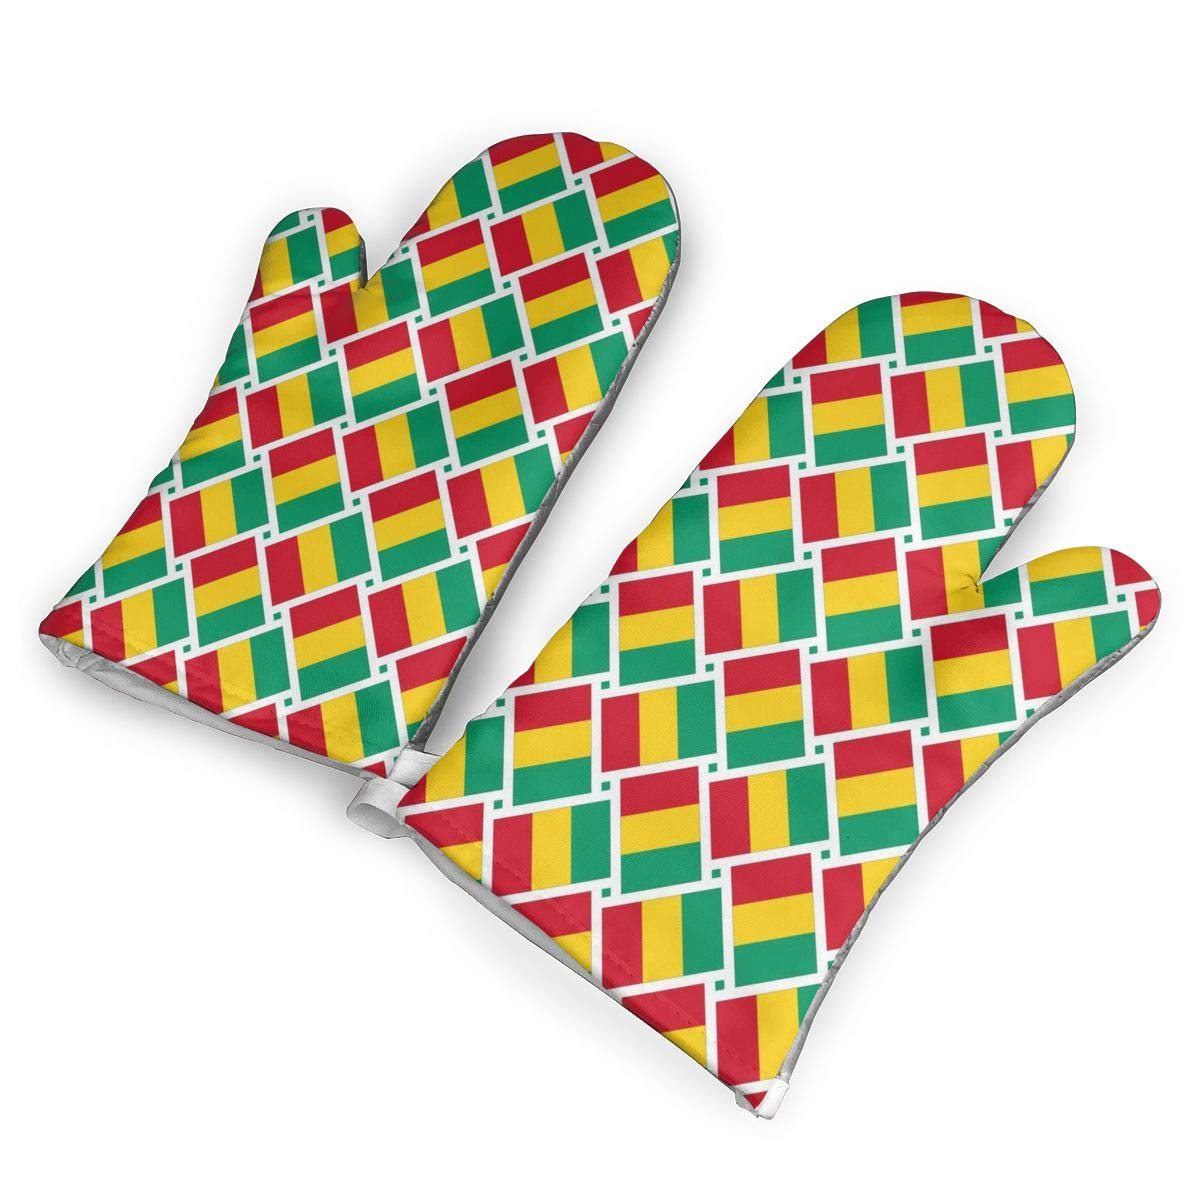 Oven Mitts 5.5 X 12 In Guinea Flag Weave Non-Slip Kitchen Oven Gloves Heat Resistant Washable Cotton Lining by KIXYOUHUU